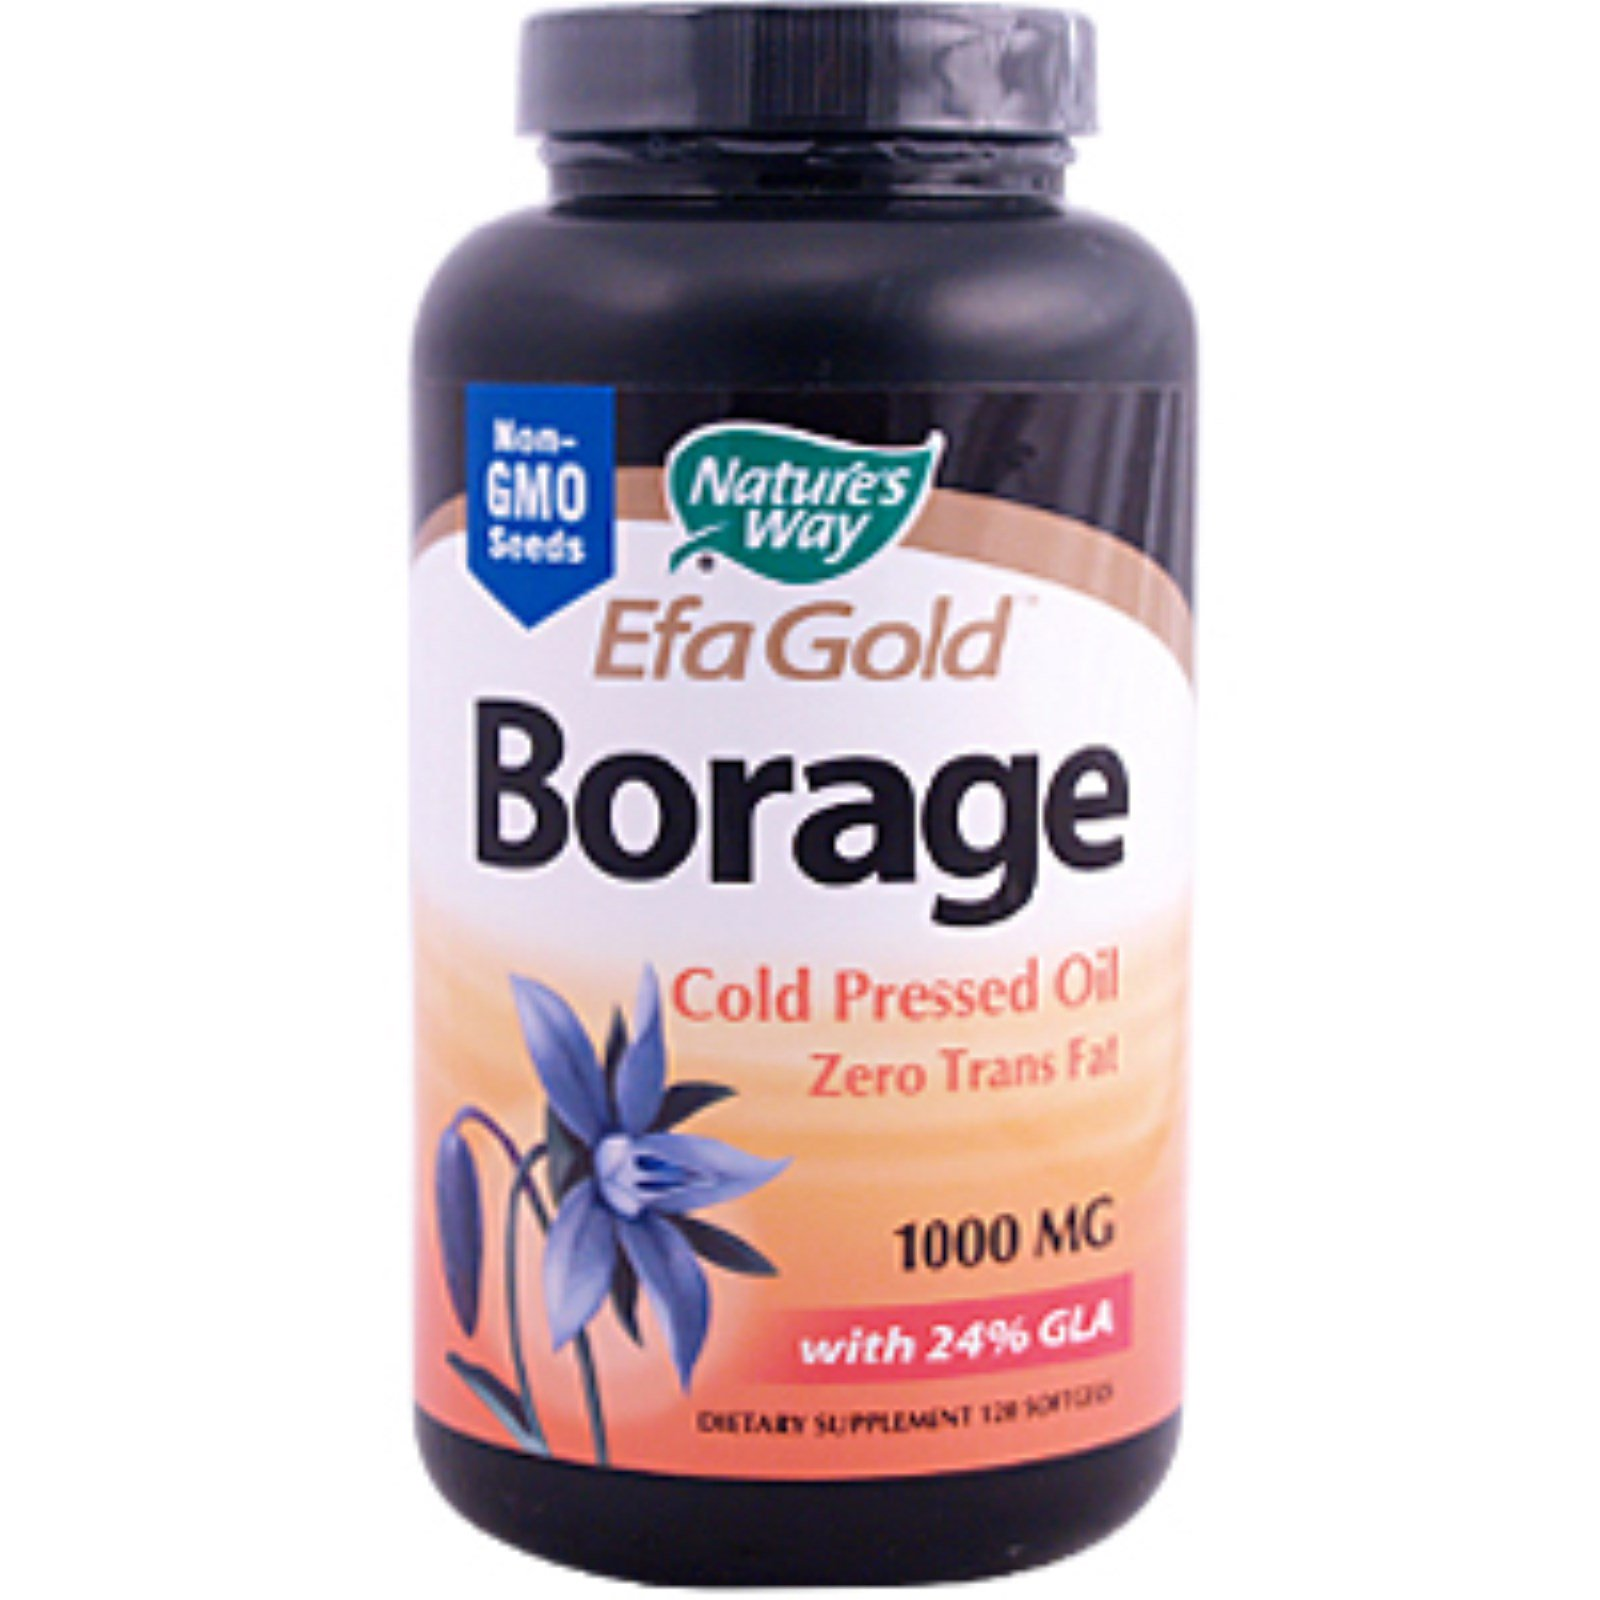 Nature's Way, Borage Efa Gold, 1000 mg, 120 Softgels (Discontinued Item)